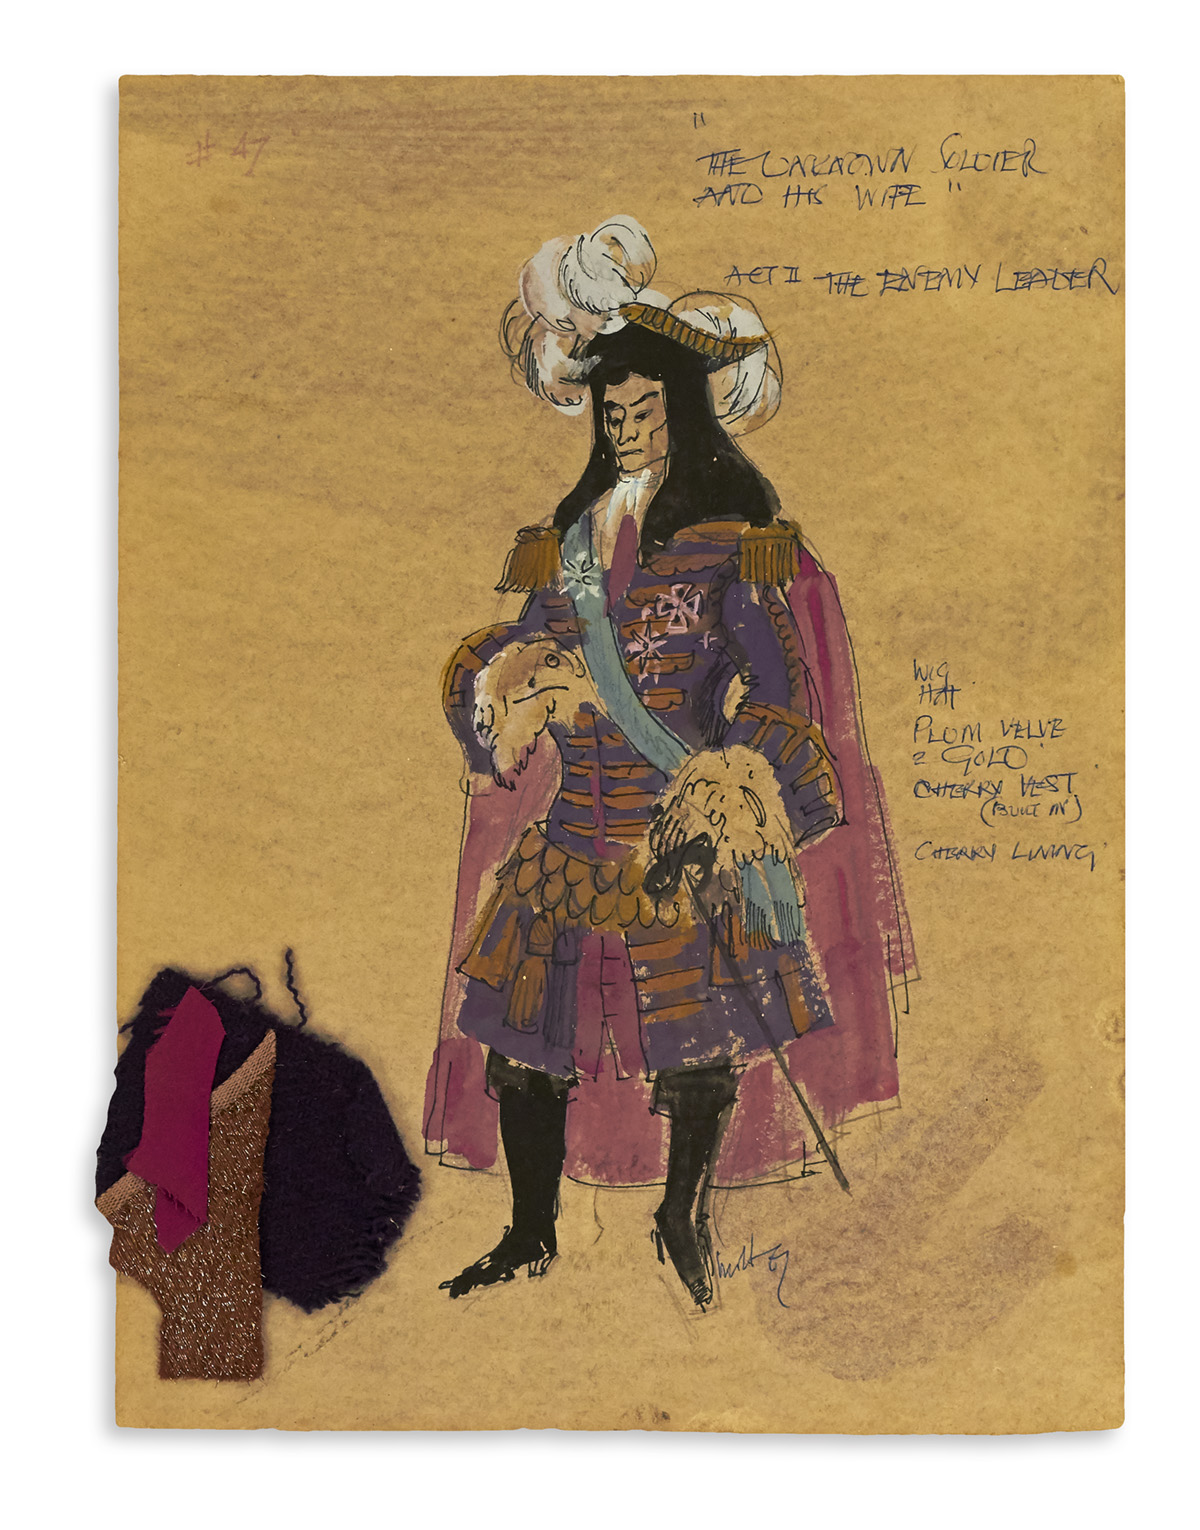 MOTLEY. Act II, The Enemy Leader. [COSTUME / THEATER / BROADWAY]